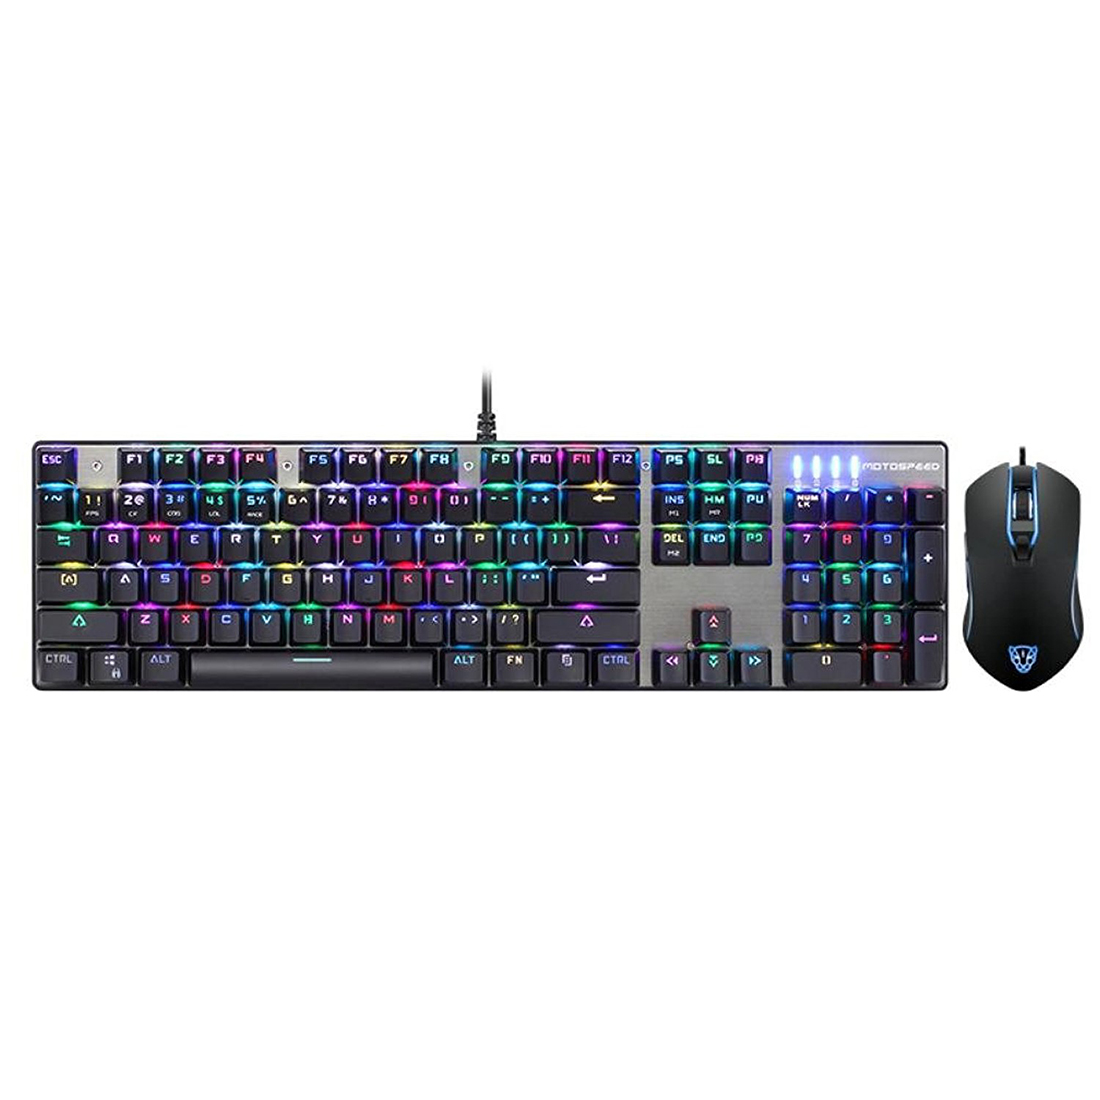 CK888 Gaming Keyboard and Mouse Set with Rainbow Backlight for Desktop